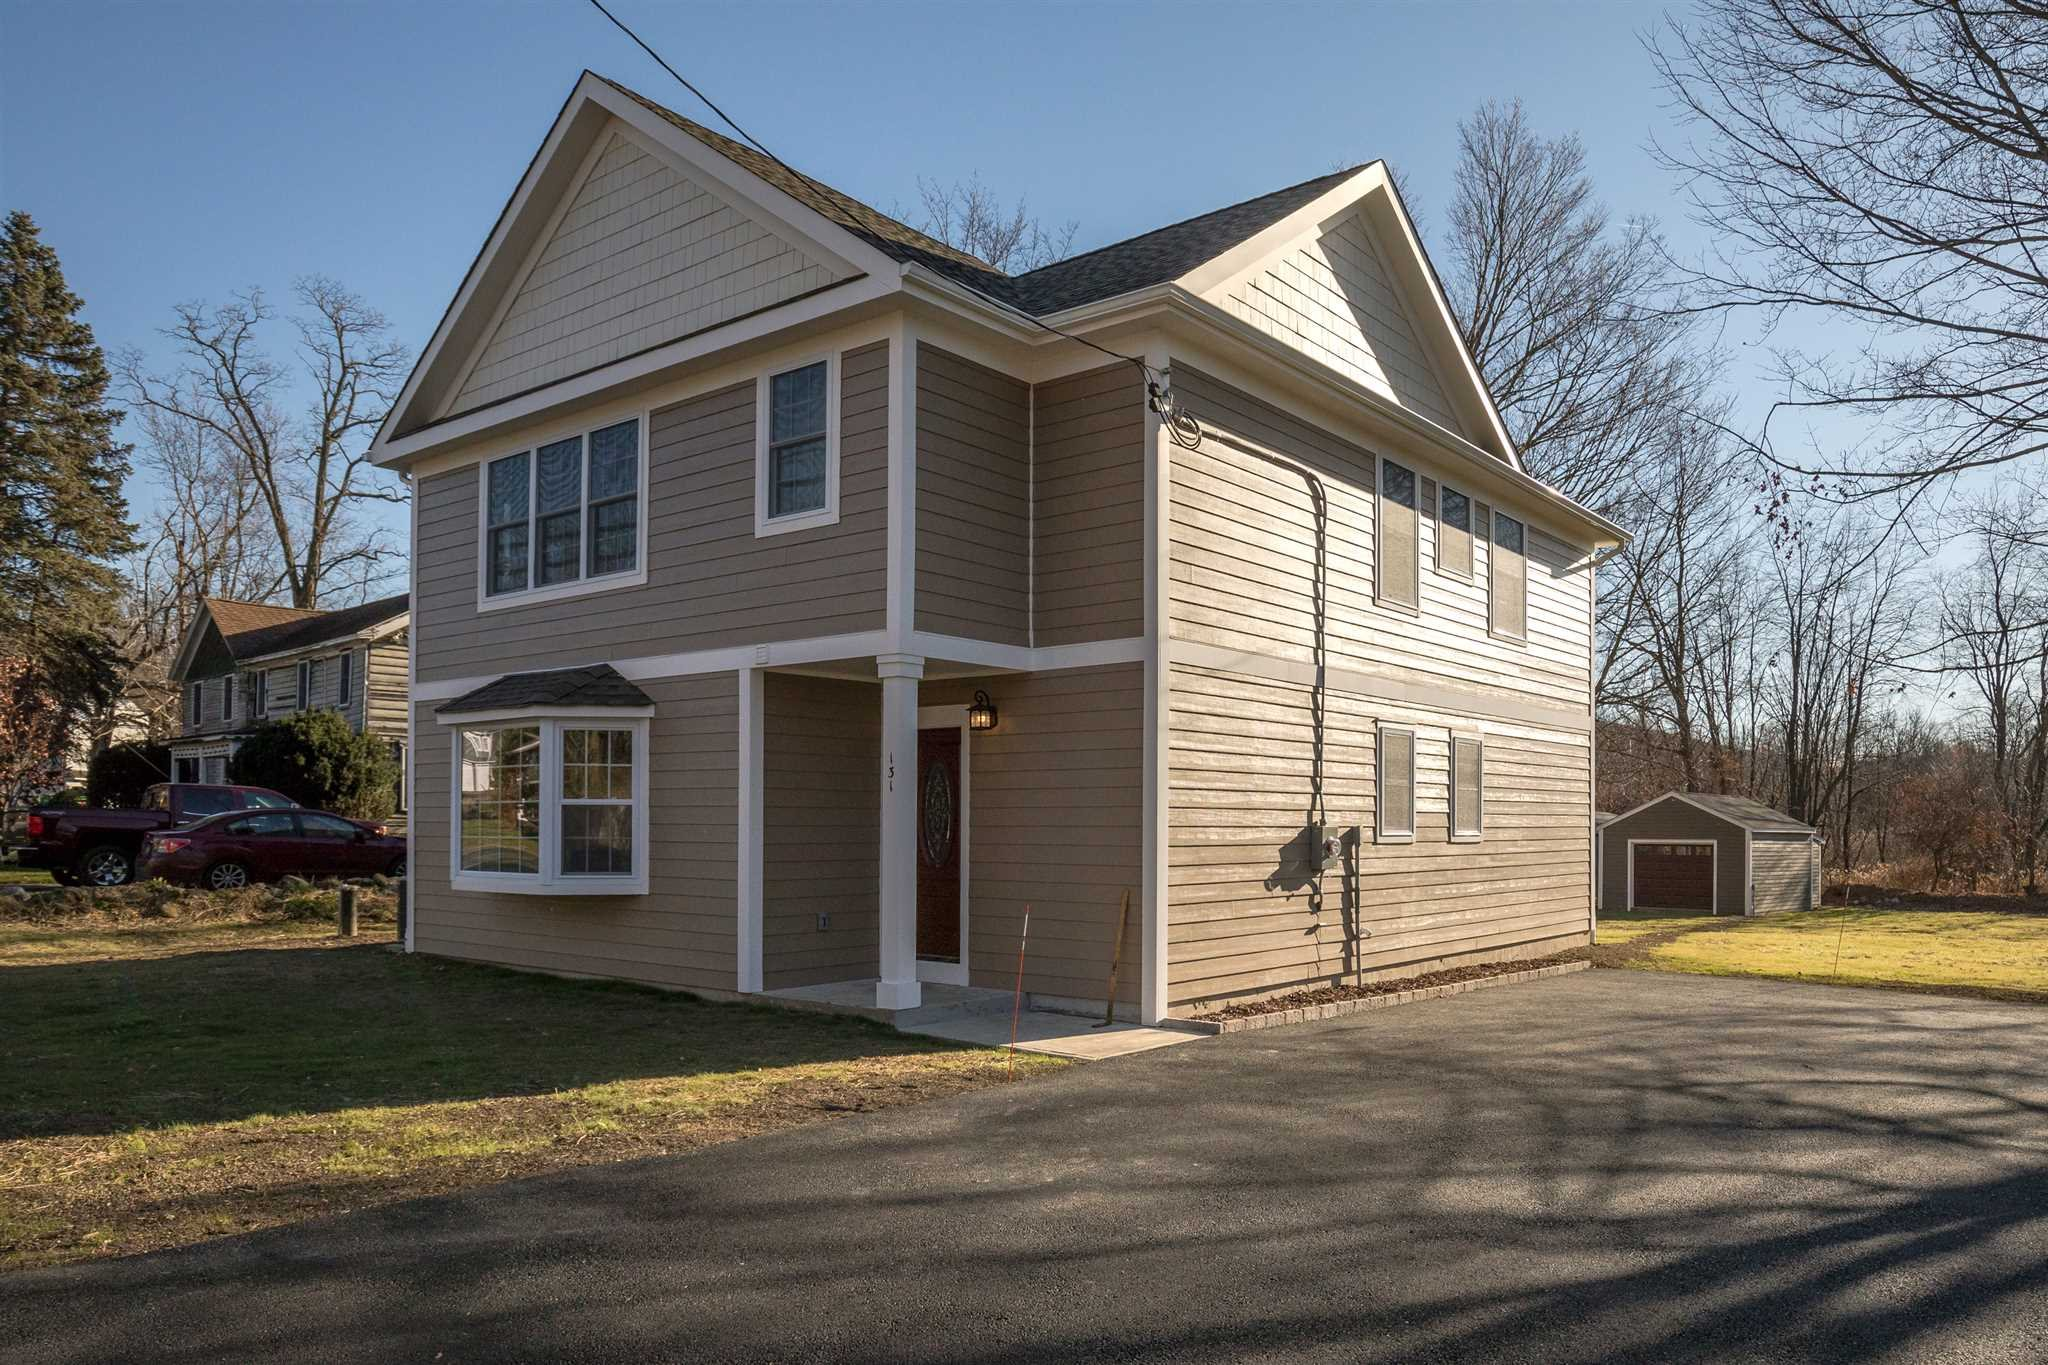 Single Family Home for Sale at 131 OLD ROUTE 52 131 OLD ROUTE 52 East Fishkill, New York 12582 United States